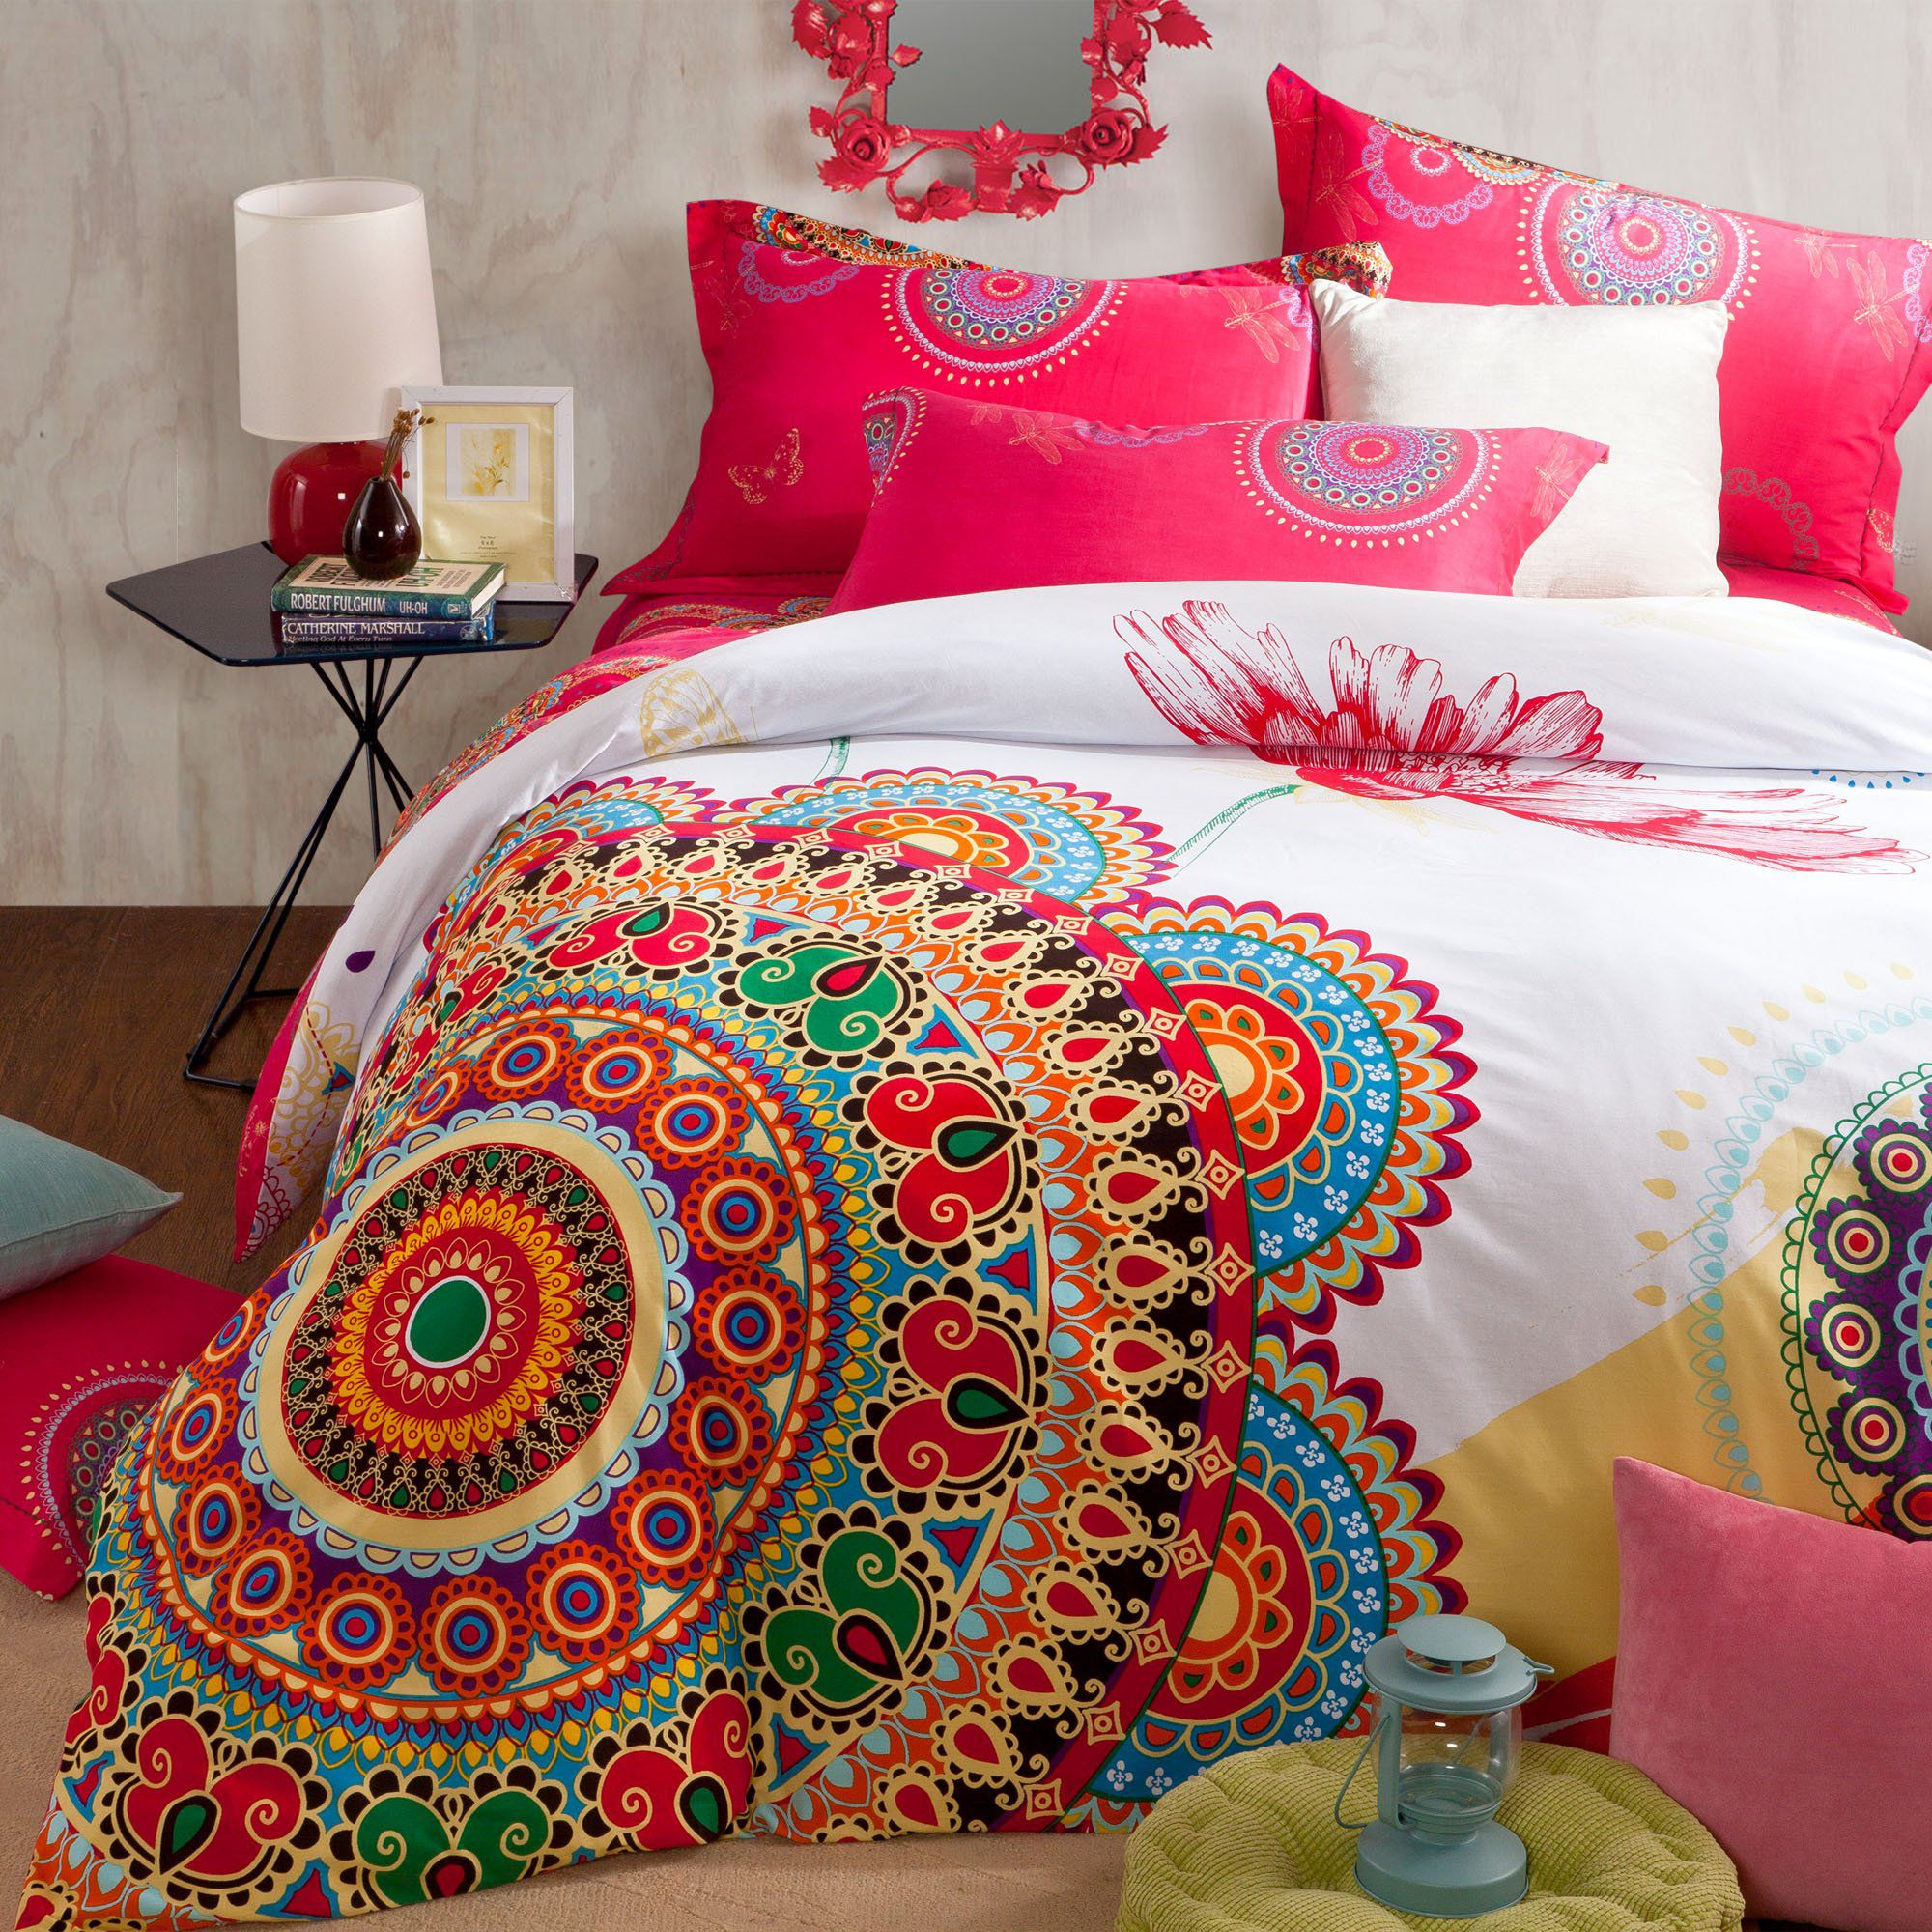 Colorful Room Decor: Bohemian Bedroom Decorating Ideas